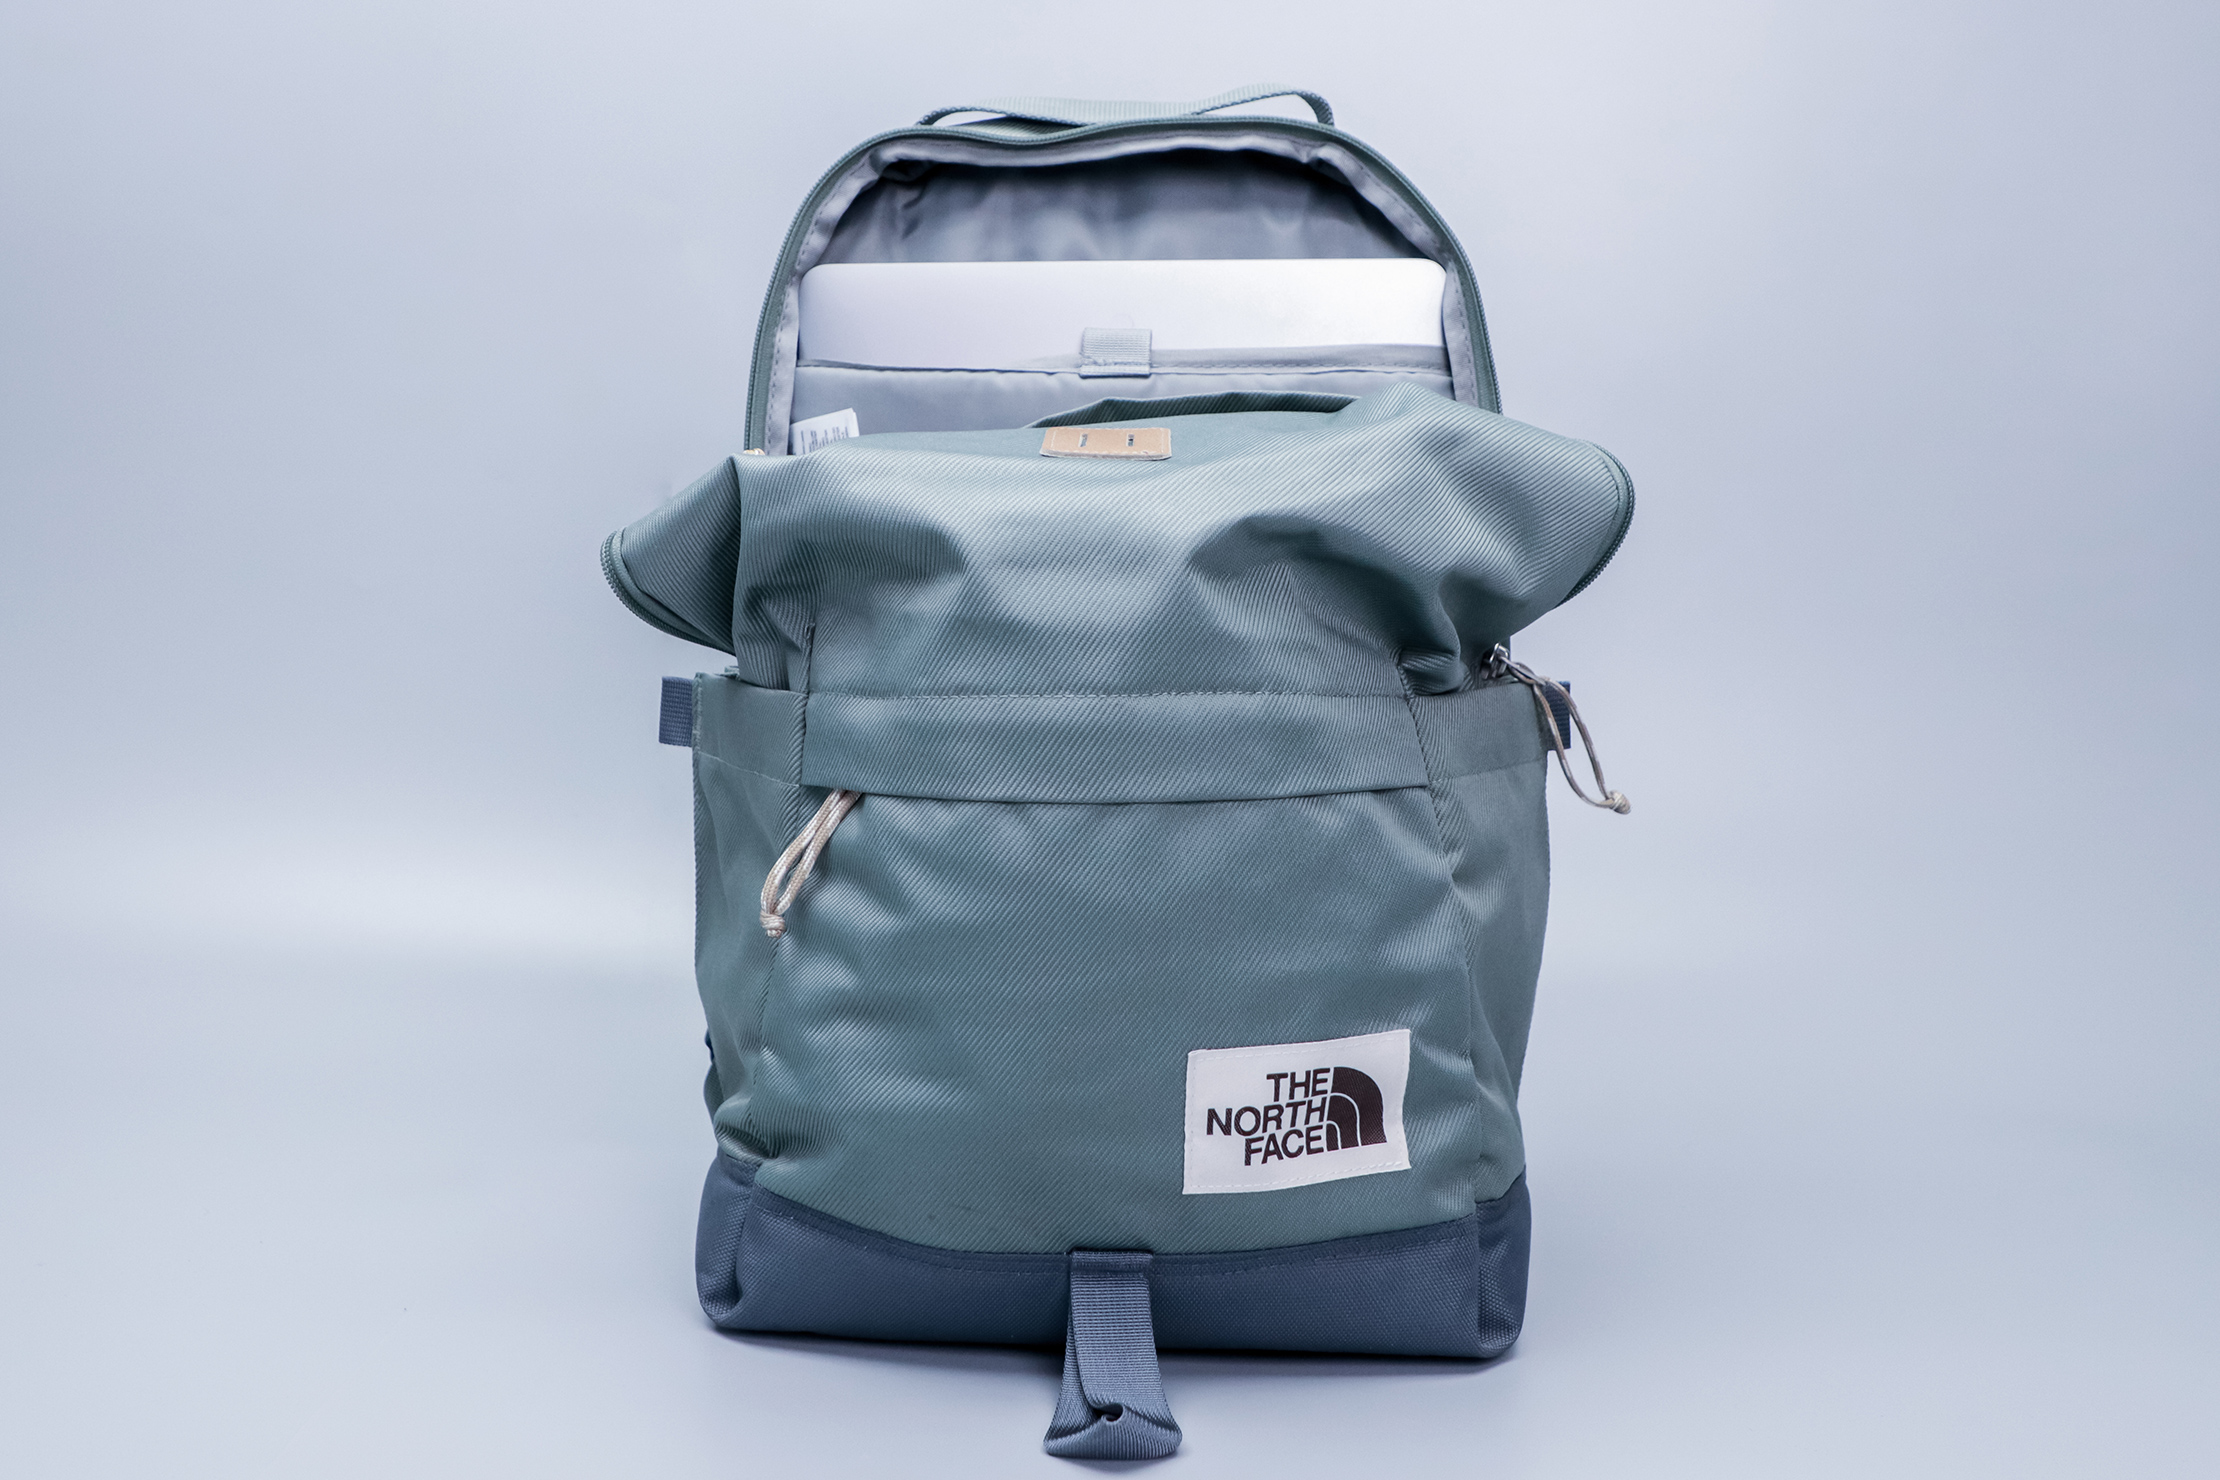 The North Face Daypack slump in front